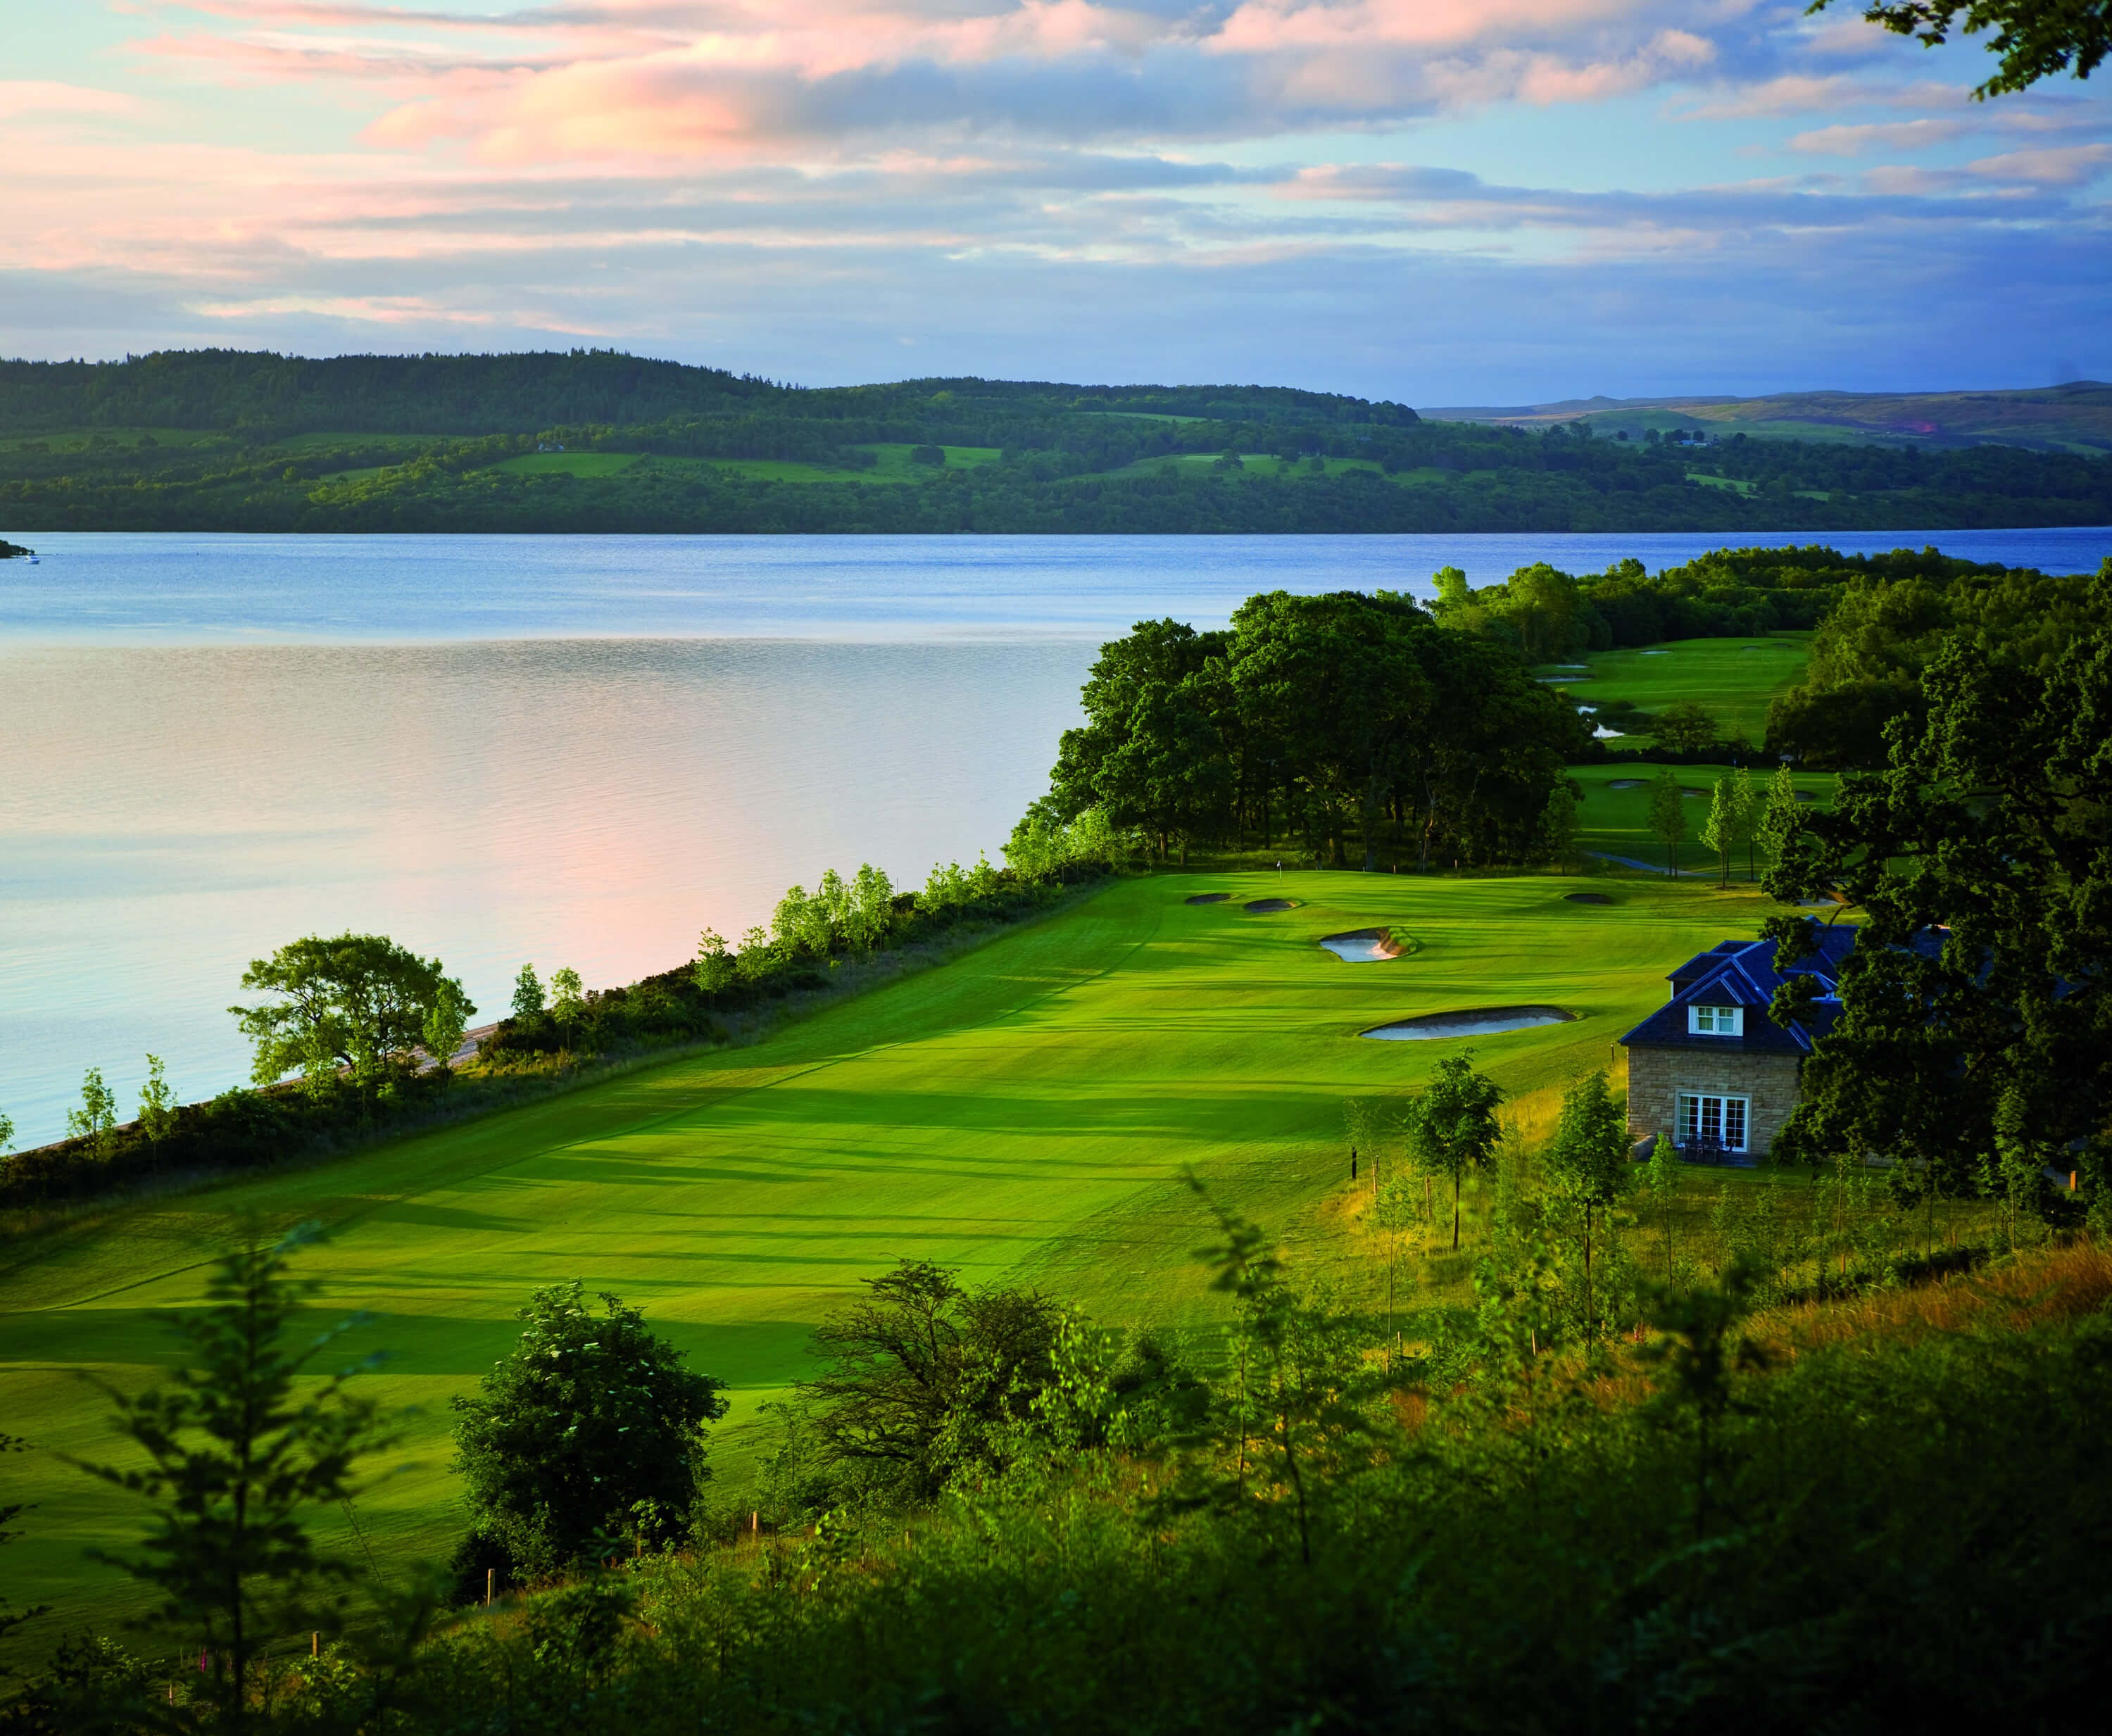 Cameron Lodges & Carrick Golf Course View in Loch Lomond